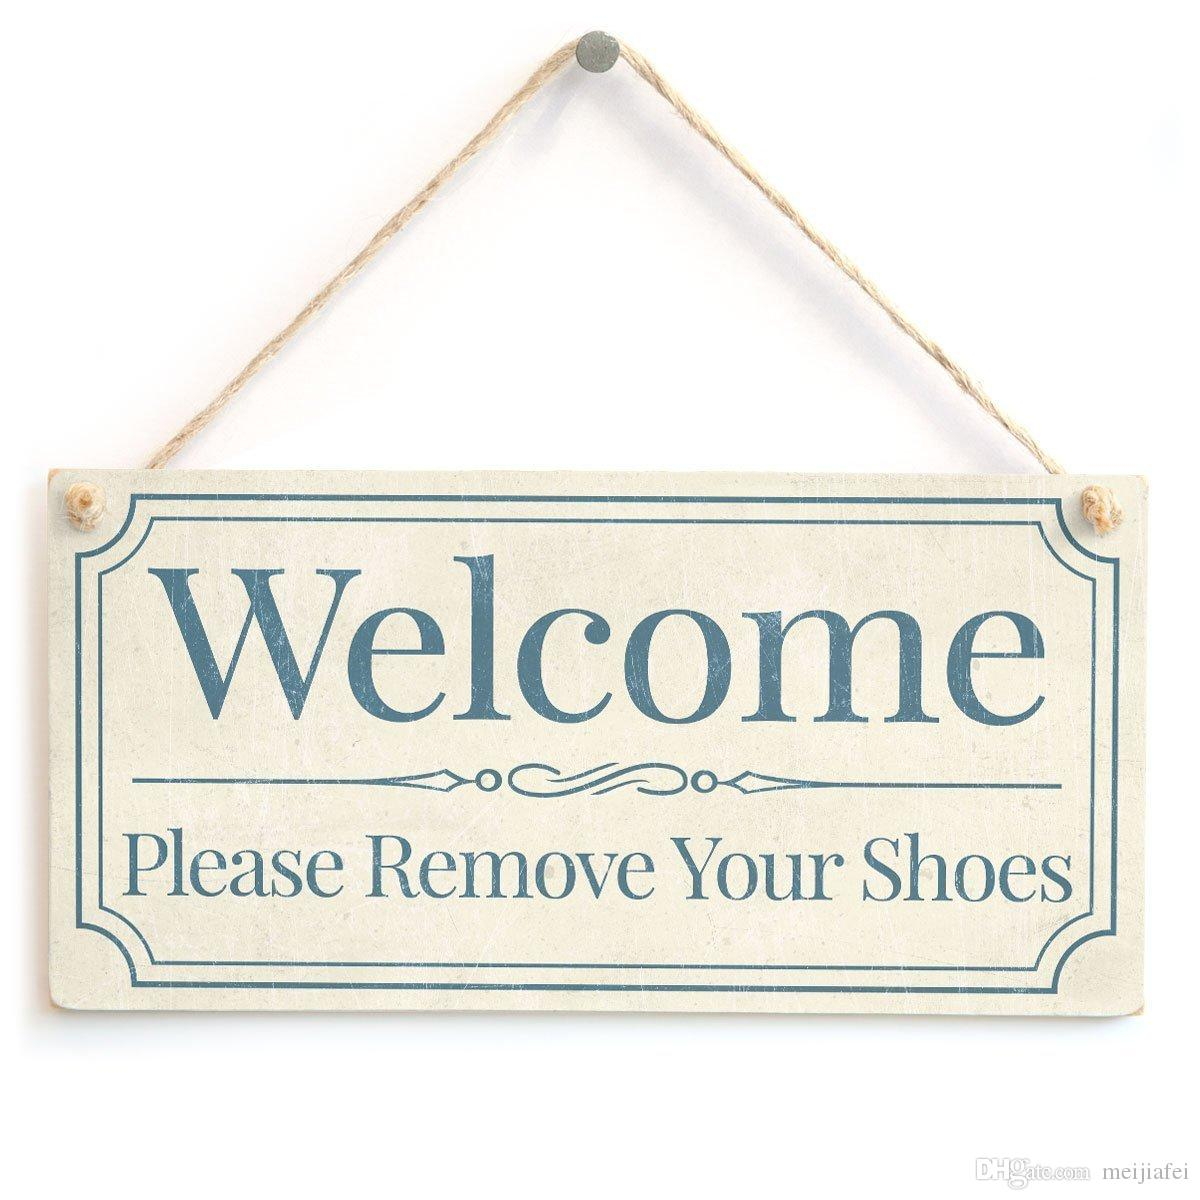 graphic about Please Remove Your Shoes Sign Printable Free titled Meijiafei Welcome Be sure to Eliminate Your Sneakers - House Accent Present Indication / Plaque For Household Front Vestibule 10 x5